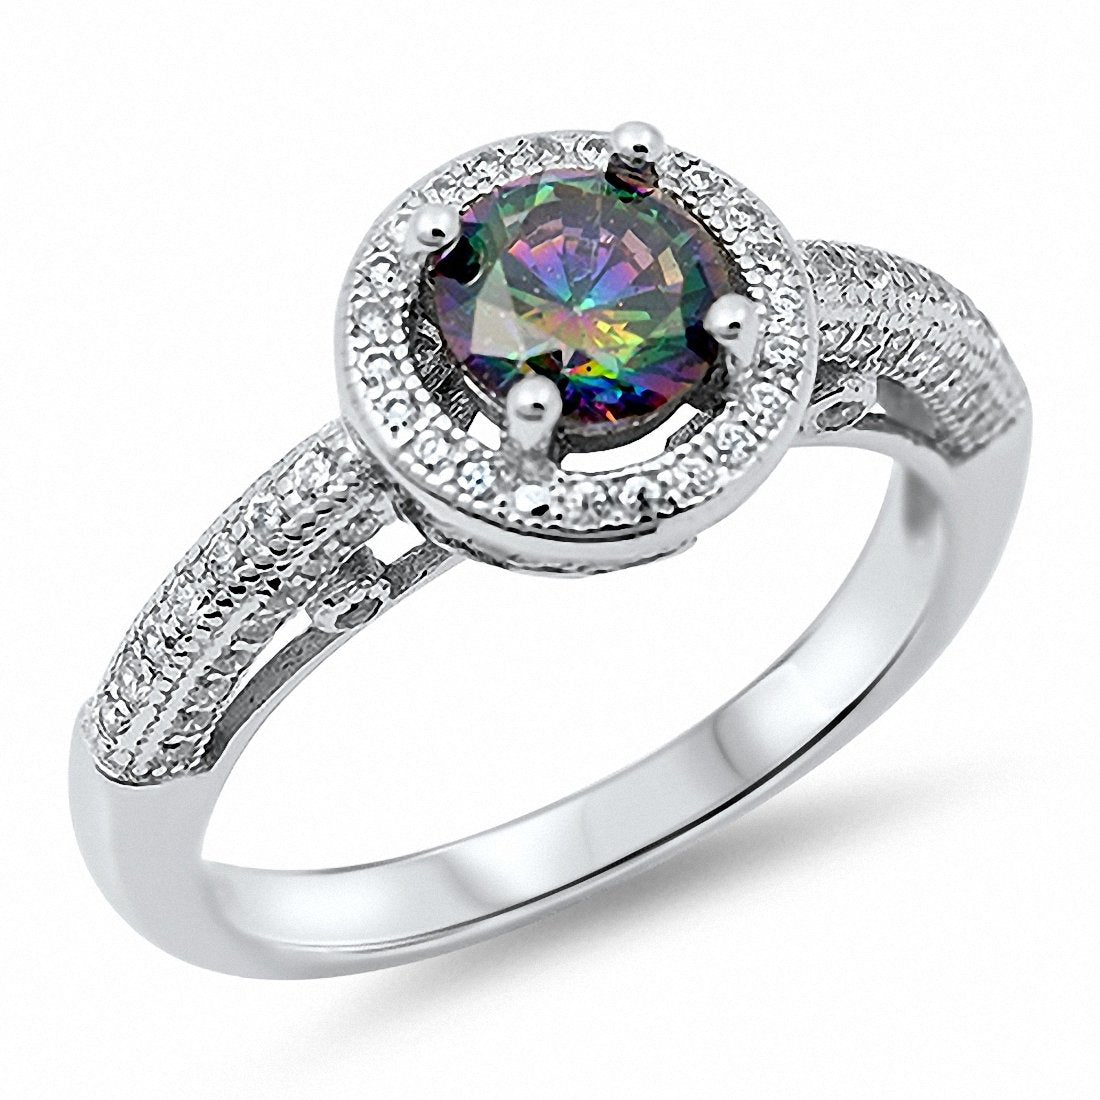 Halo Engagement Ring Round Simulated Stone 925 Sterling Silver Choose Color